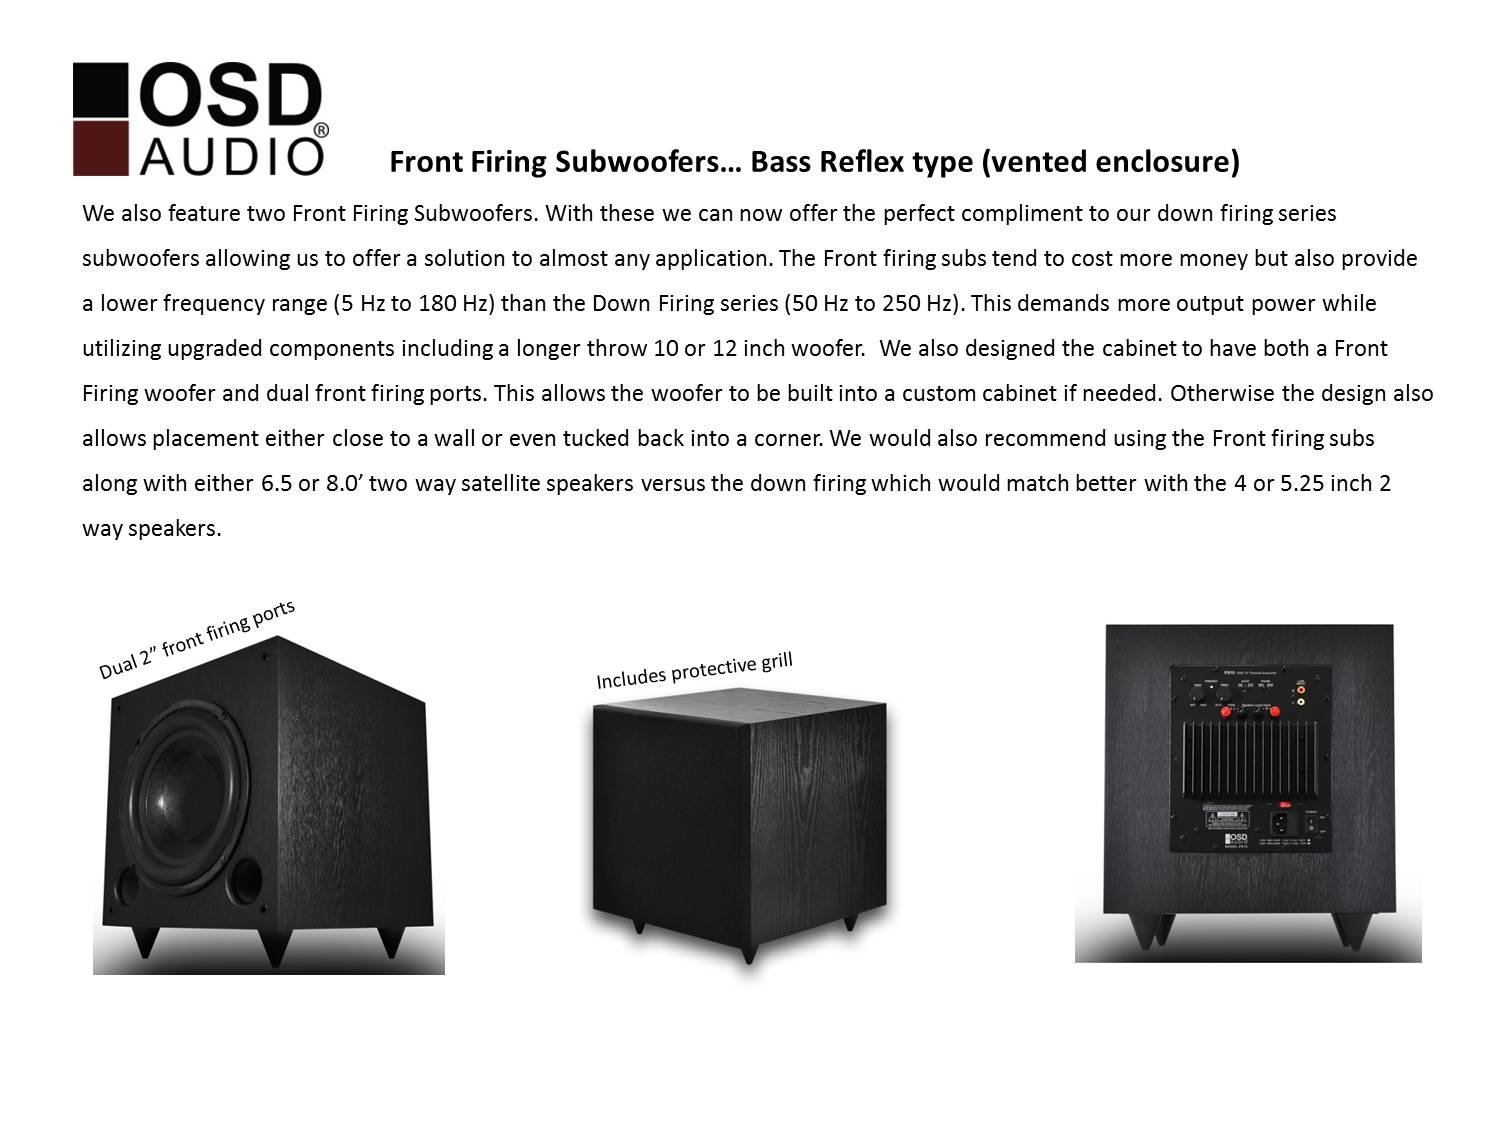 OSD Audio PS10 High Powered 10-Inch 125W Powered Premium Home Theatre Subwoofer, Black Matte Finish